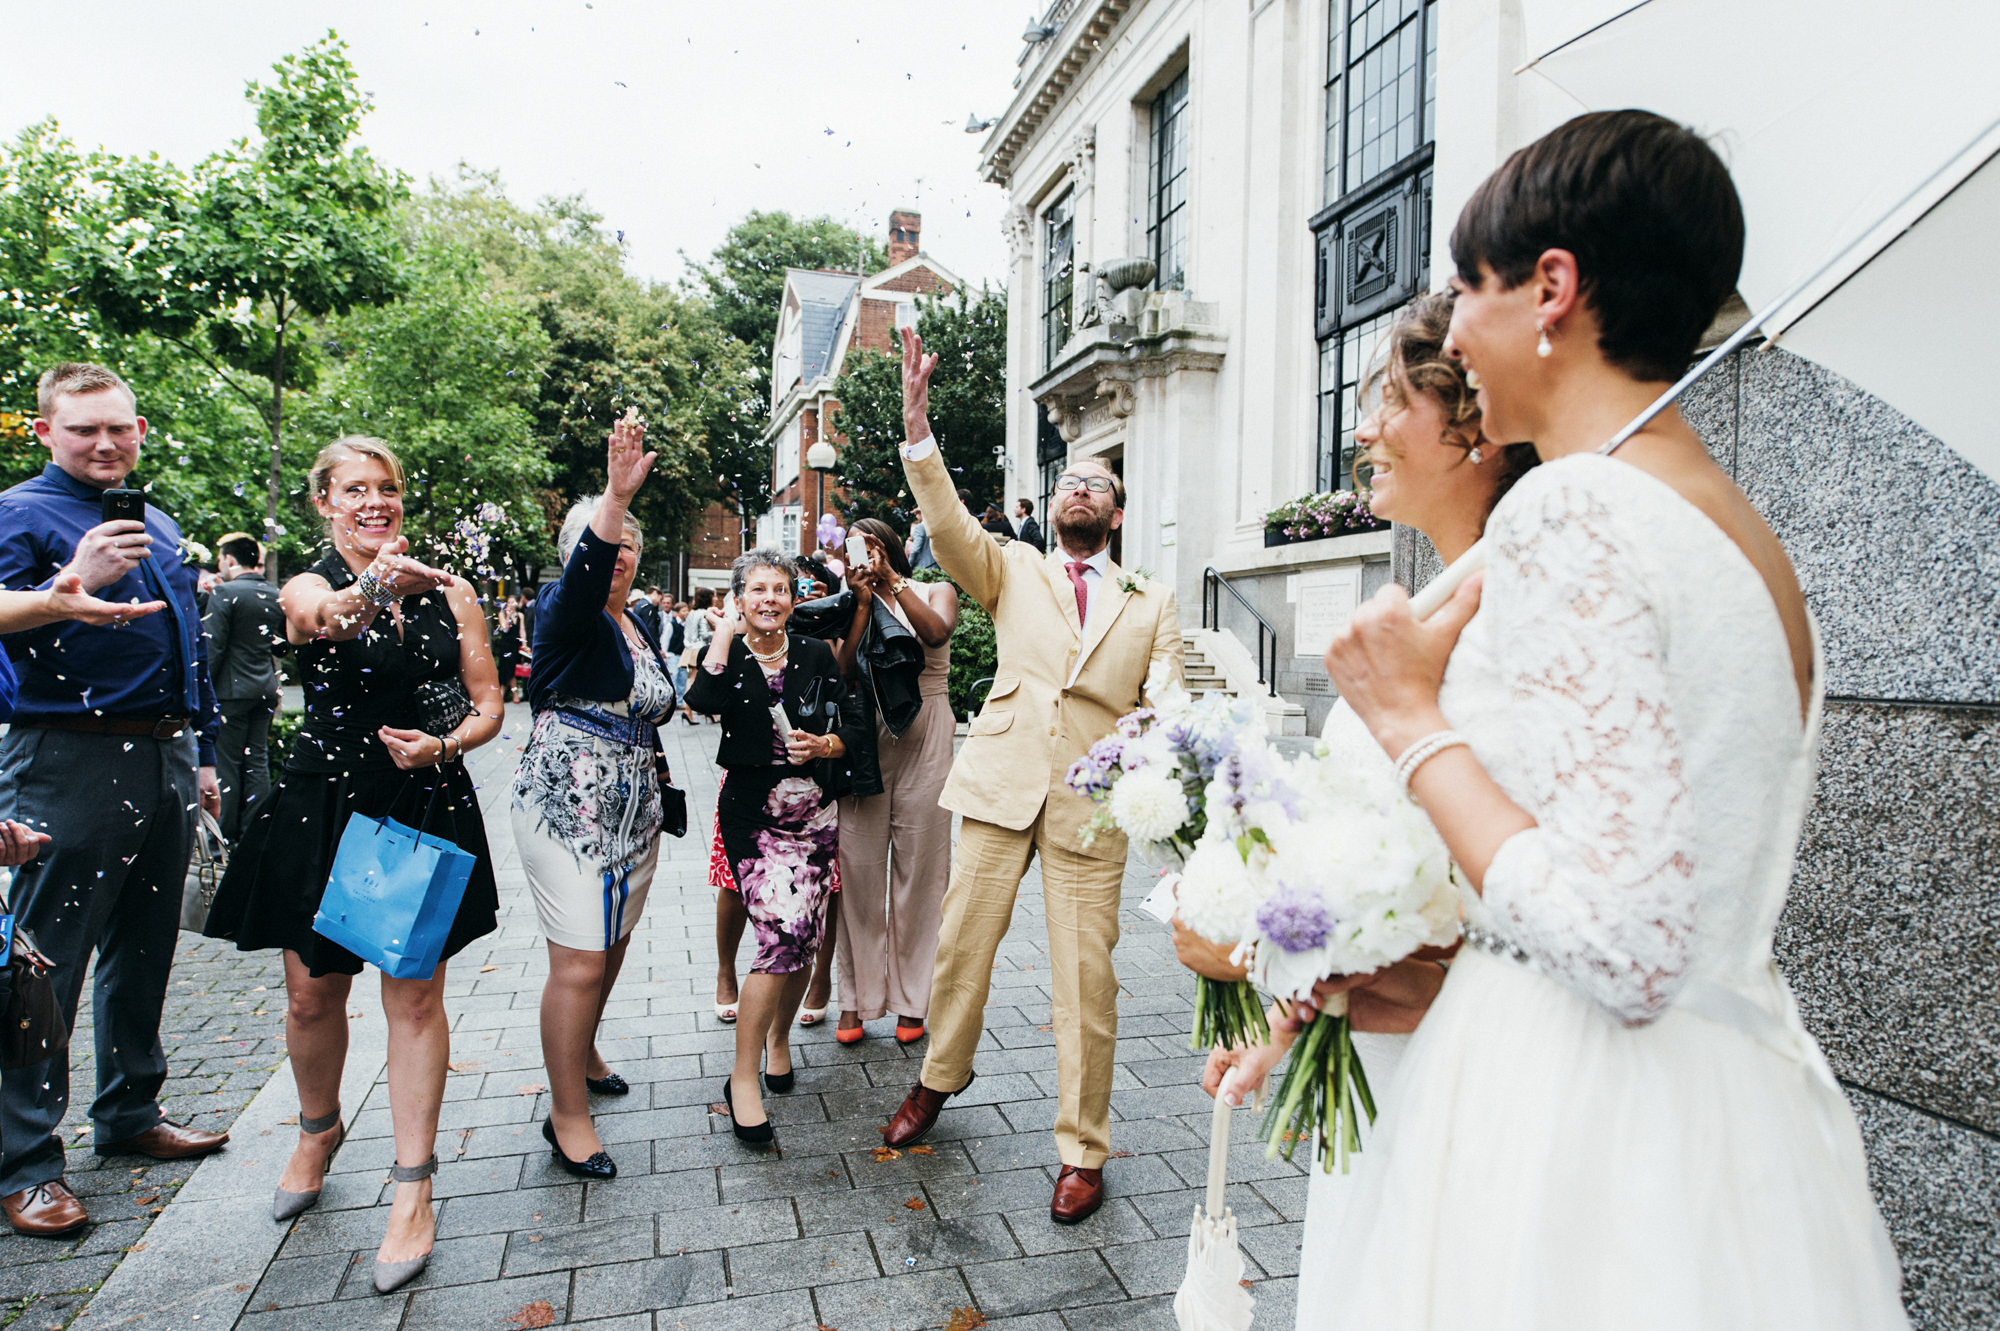 Confetti over gay wedding The Roost Dalston wedding - quirky London wedding photographer © Babb Photo